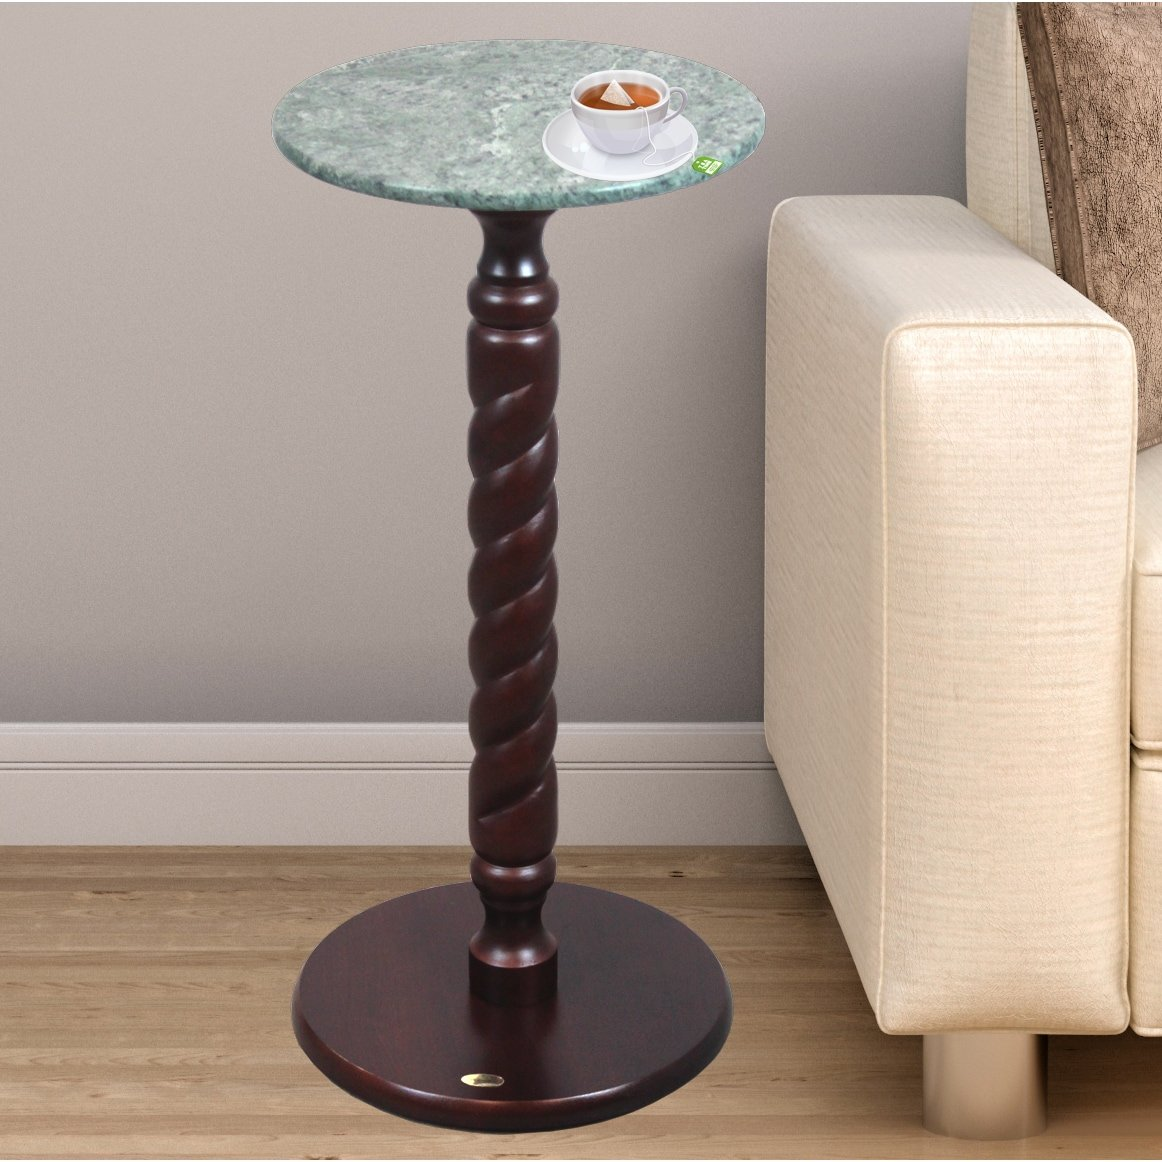 Uniquewise Solid Wood Round Table, Side Table with Green Marble Top